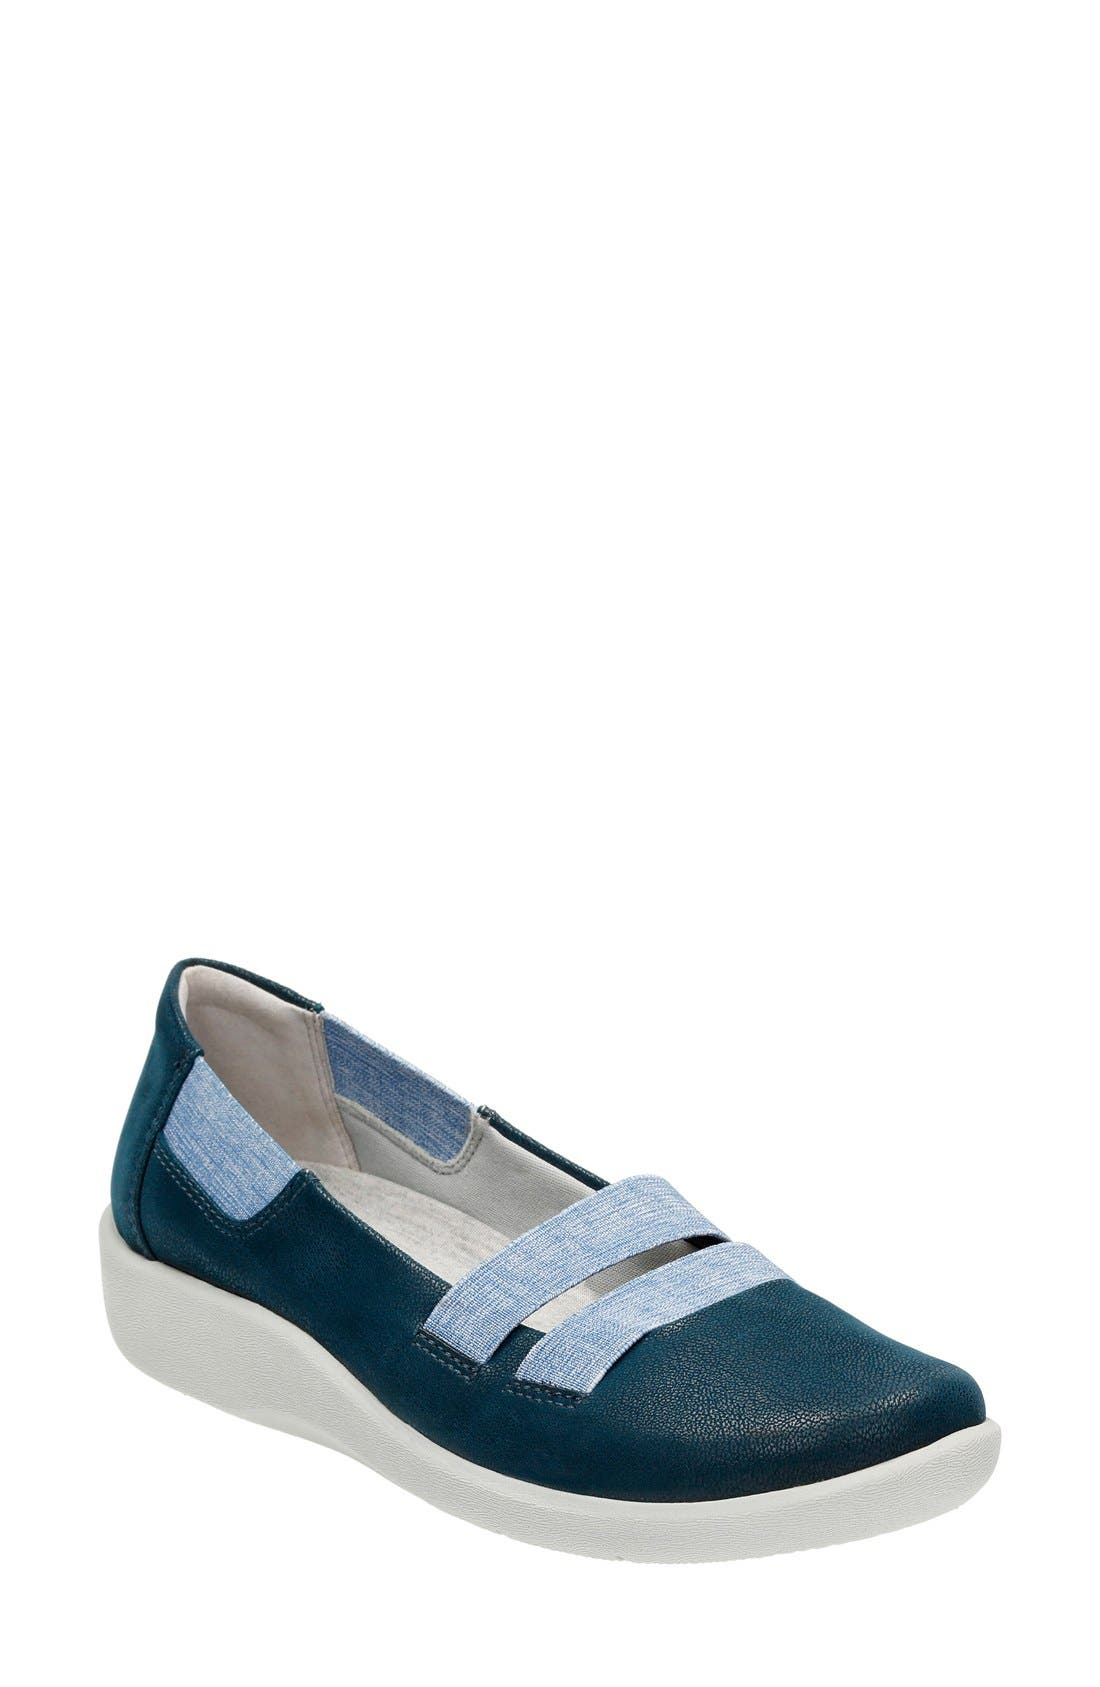 CLARKS® ORIGINALS Clarks® 'Sillian - Rest' Flat